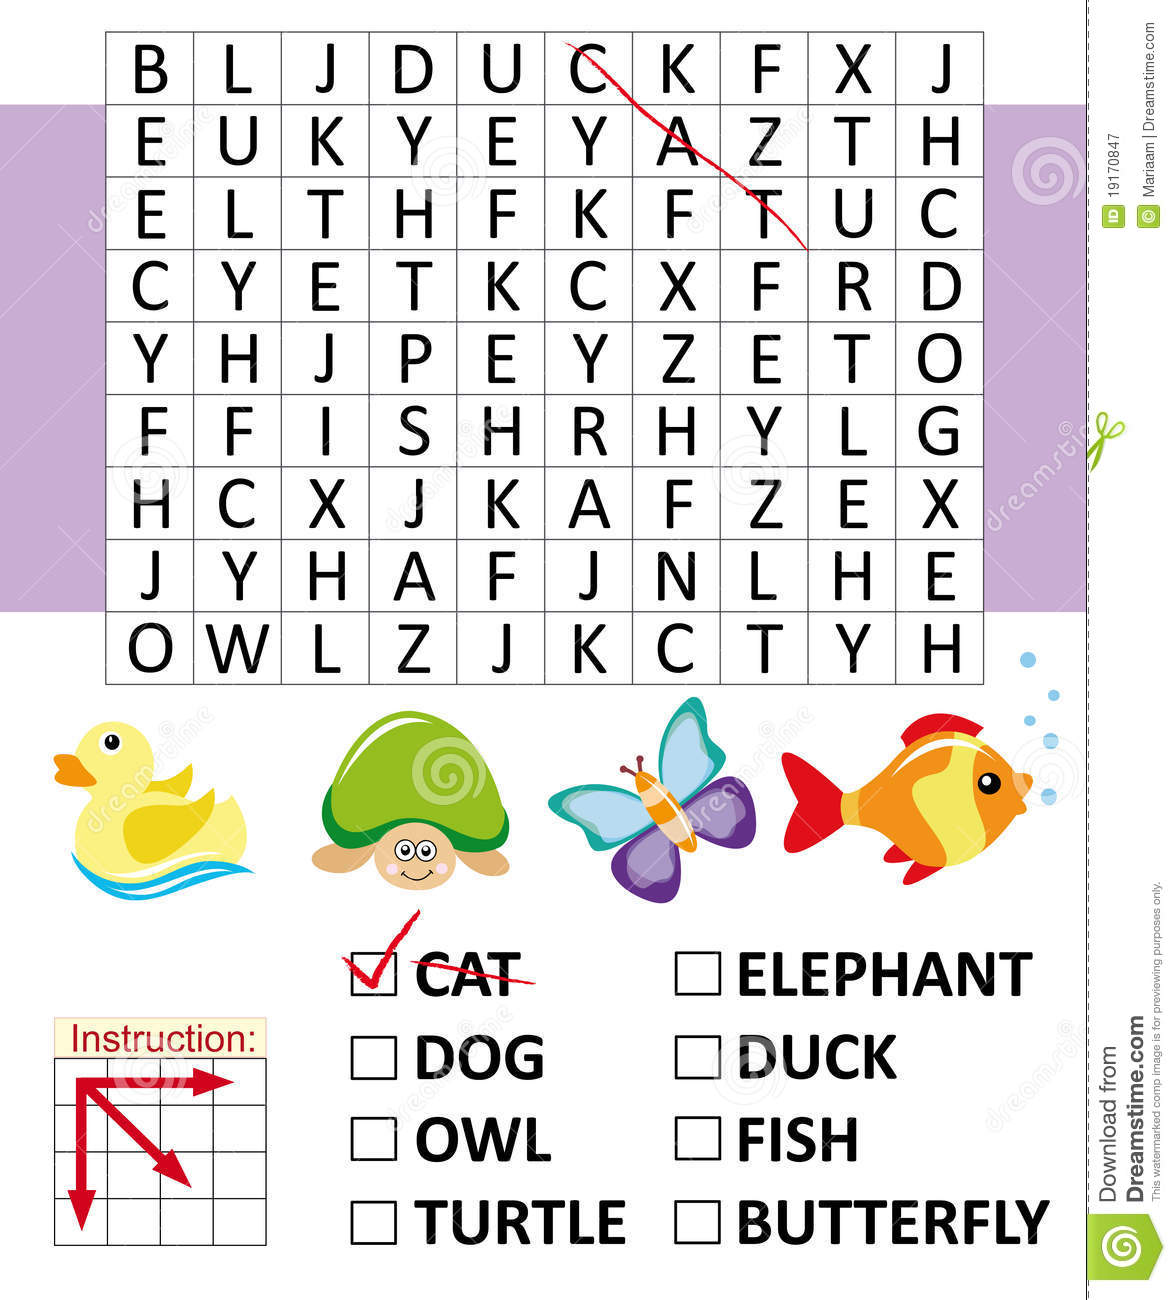 Word Search Game With Animals Royalty Free Stock